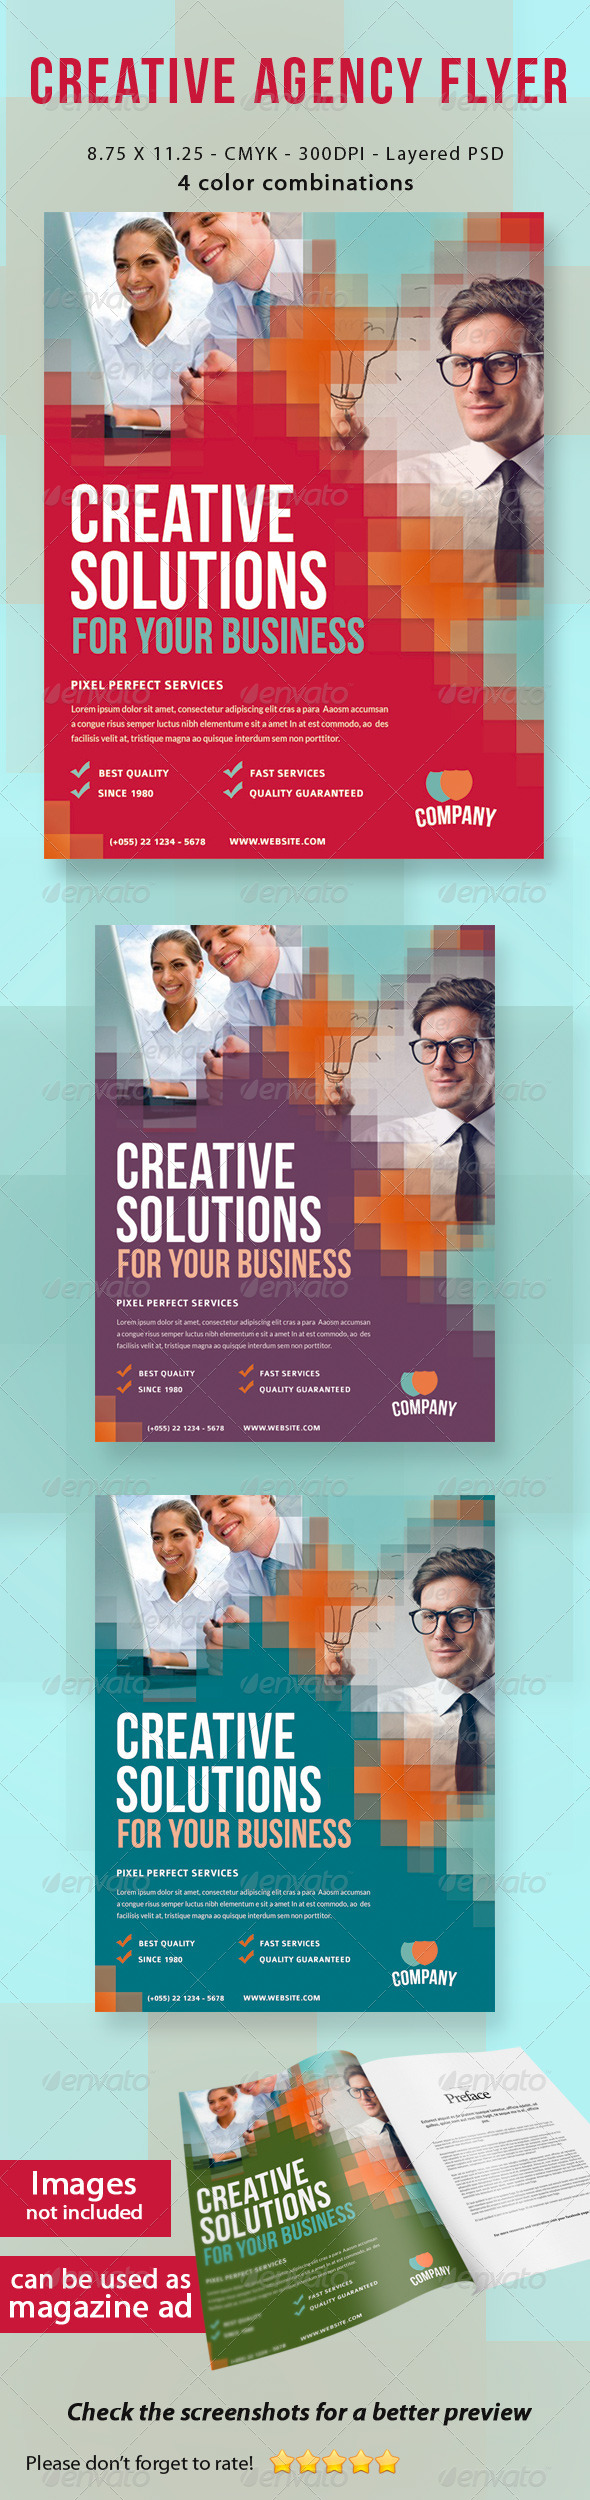 Advertising Agency Flyer Creative Agency Flyer